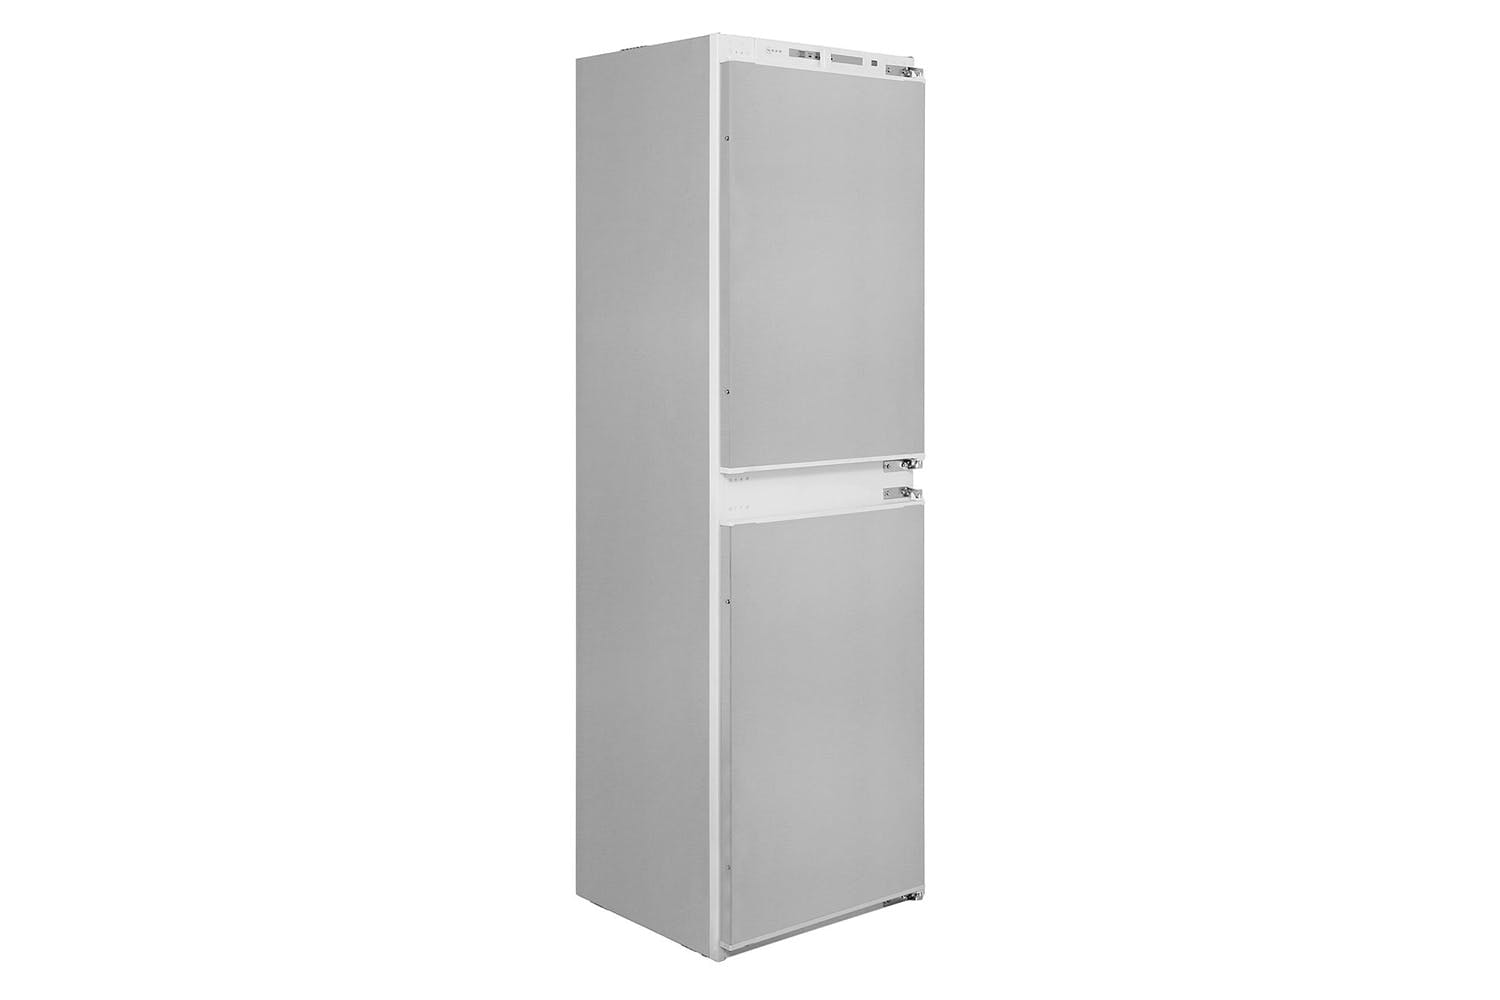 Neff Integrated Fridge Freezer |KI5852S30G